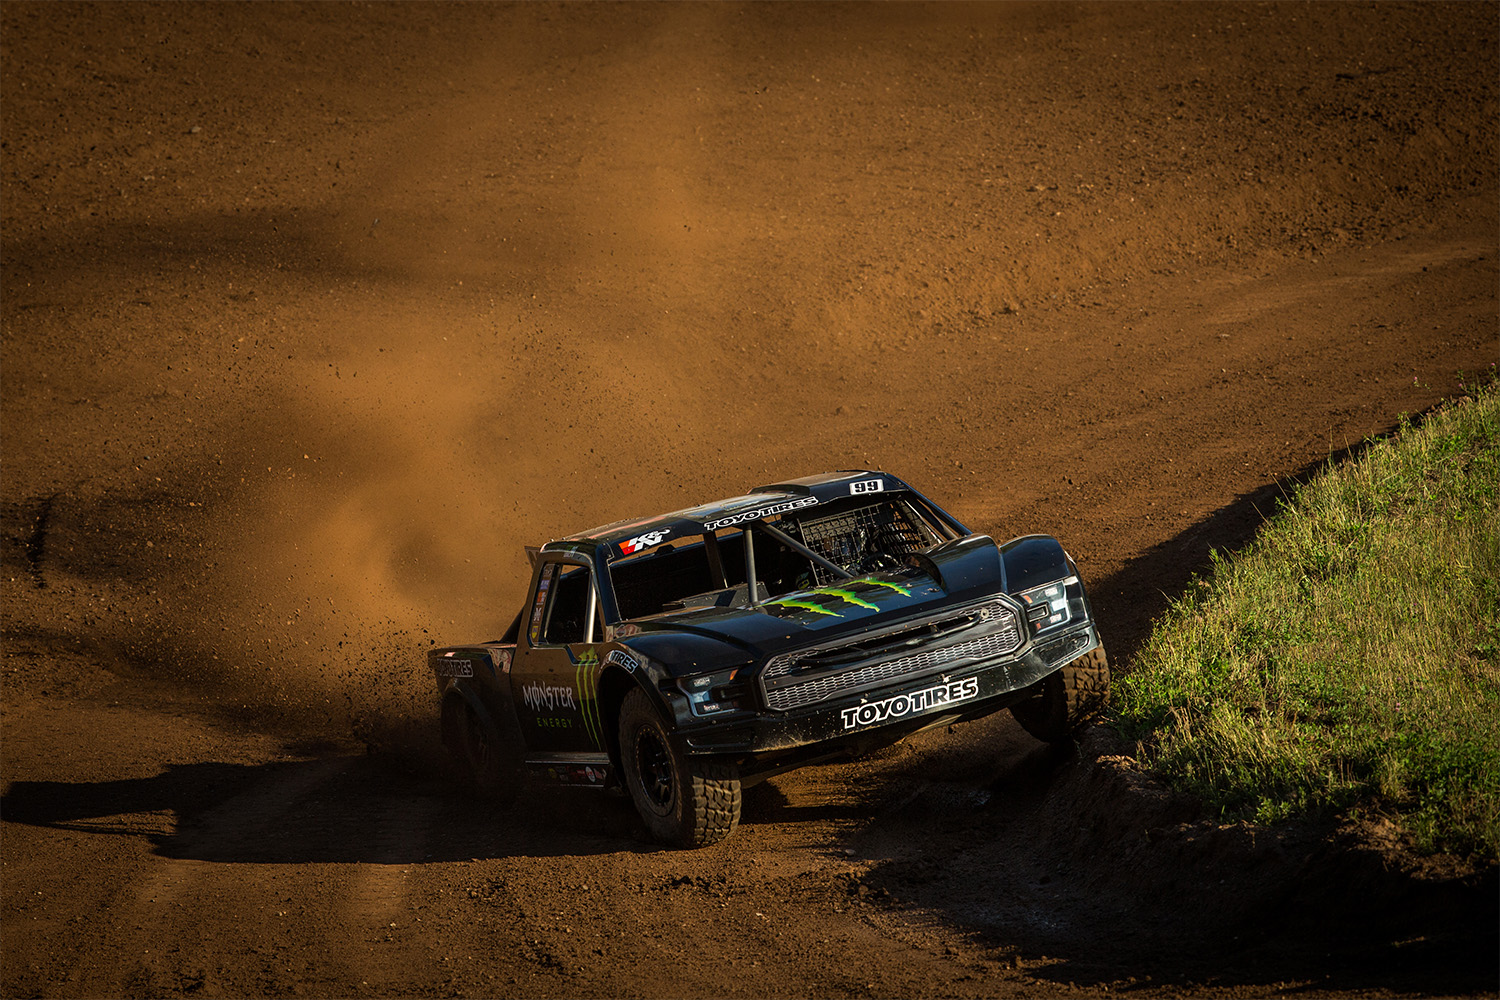 Kyle Leduc and his #99 Monster Energy / Toyo Tires / WD-40 / Ford Raptor Pro 4